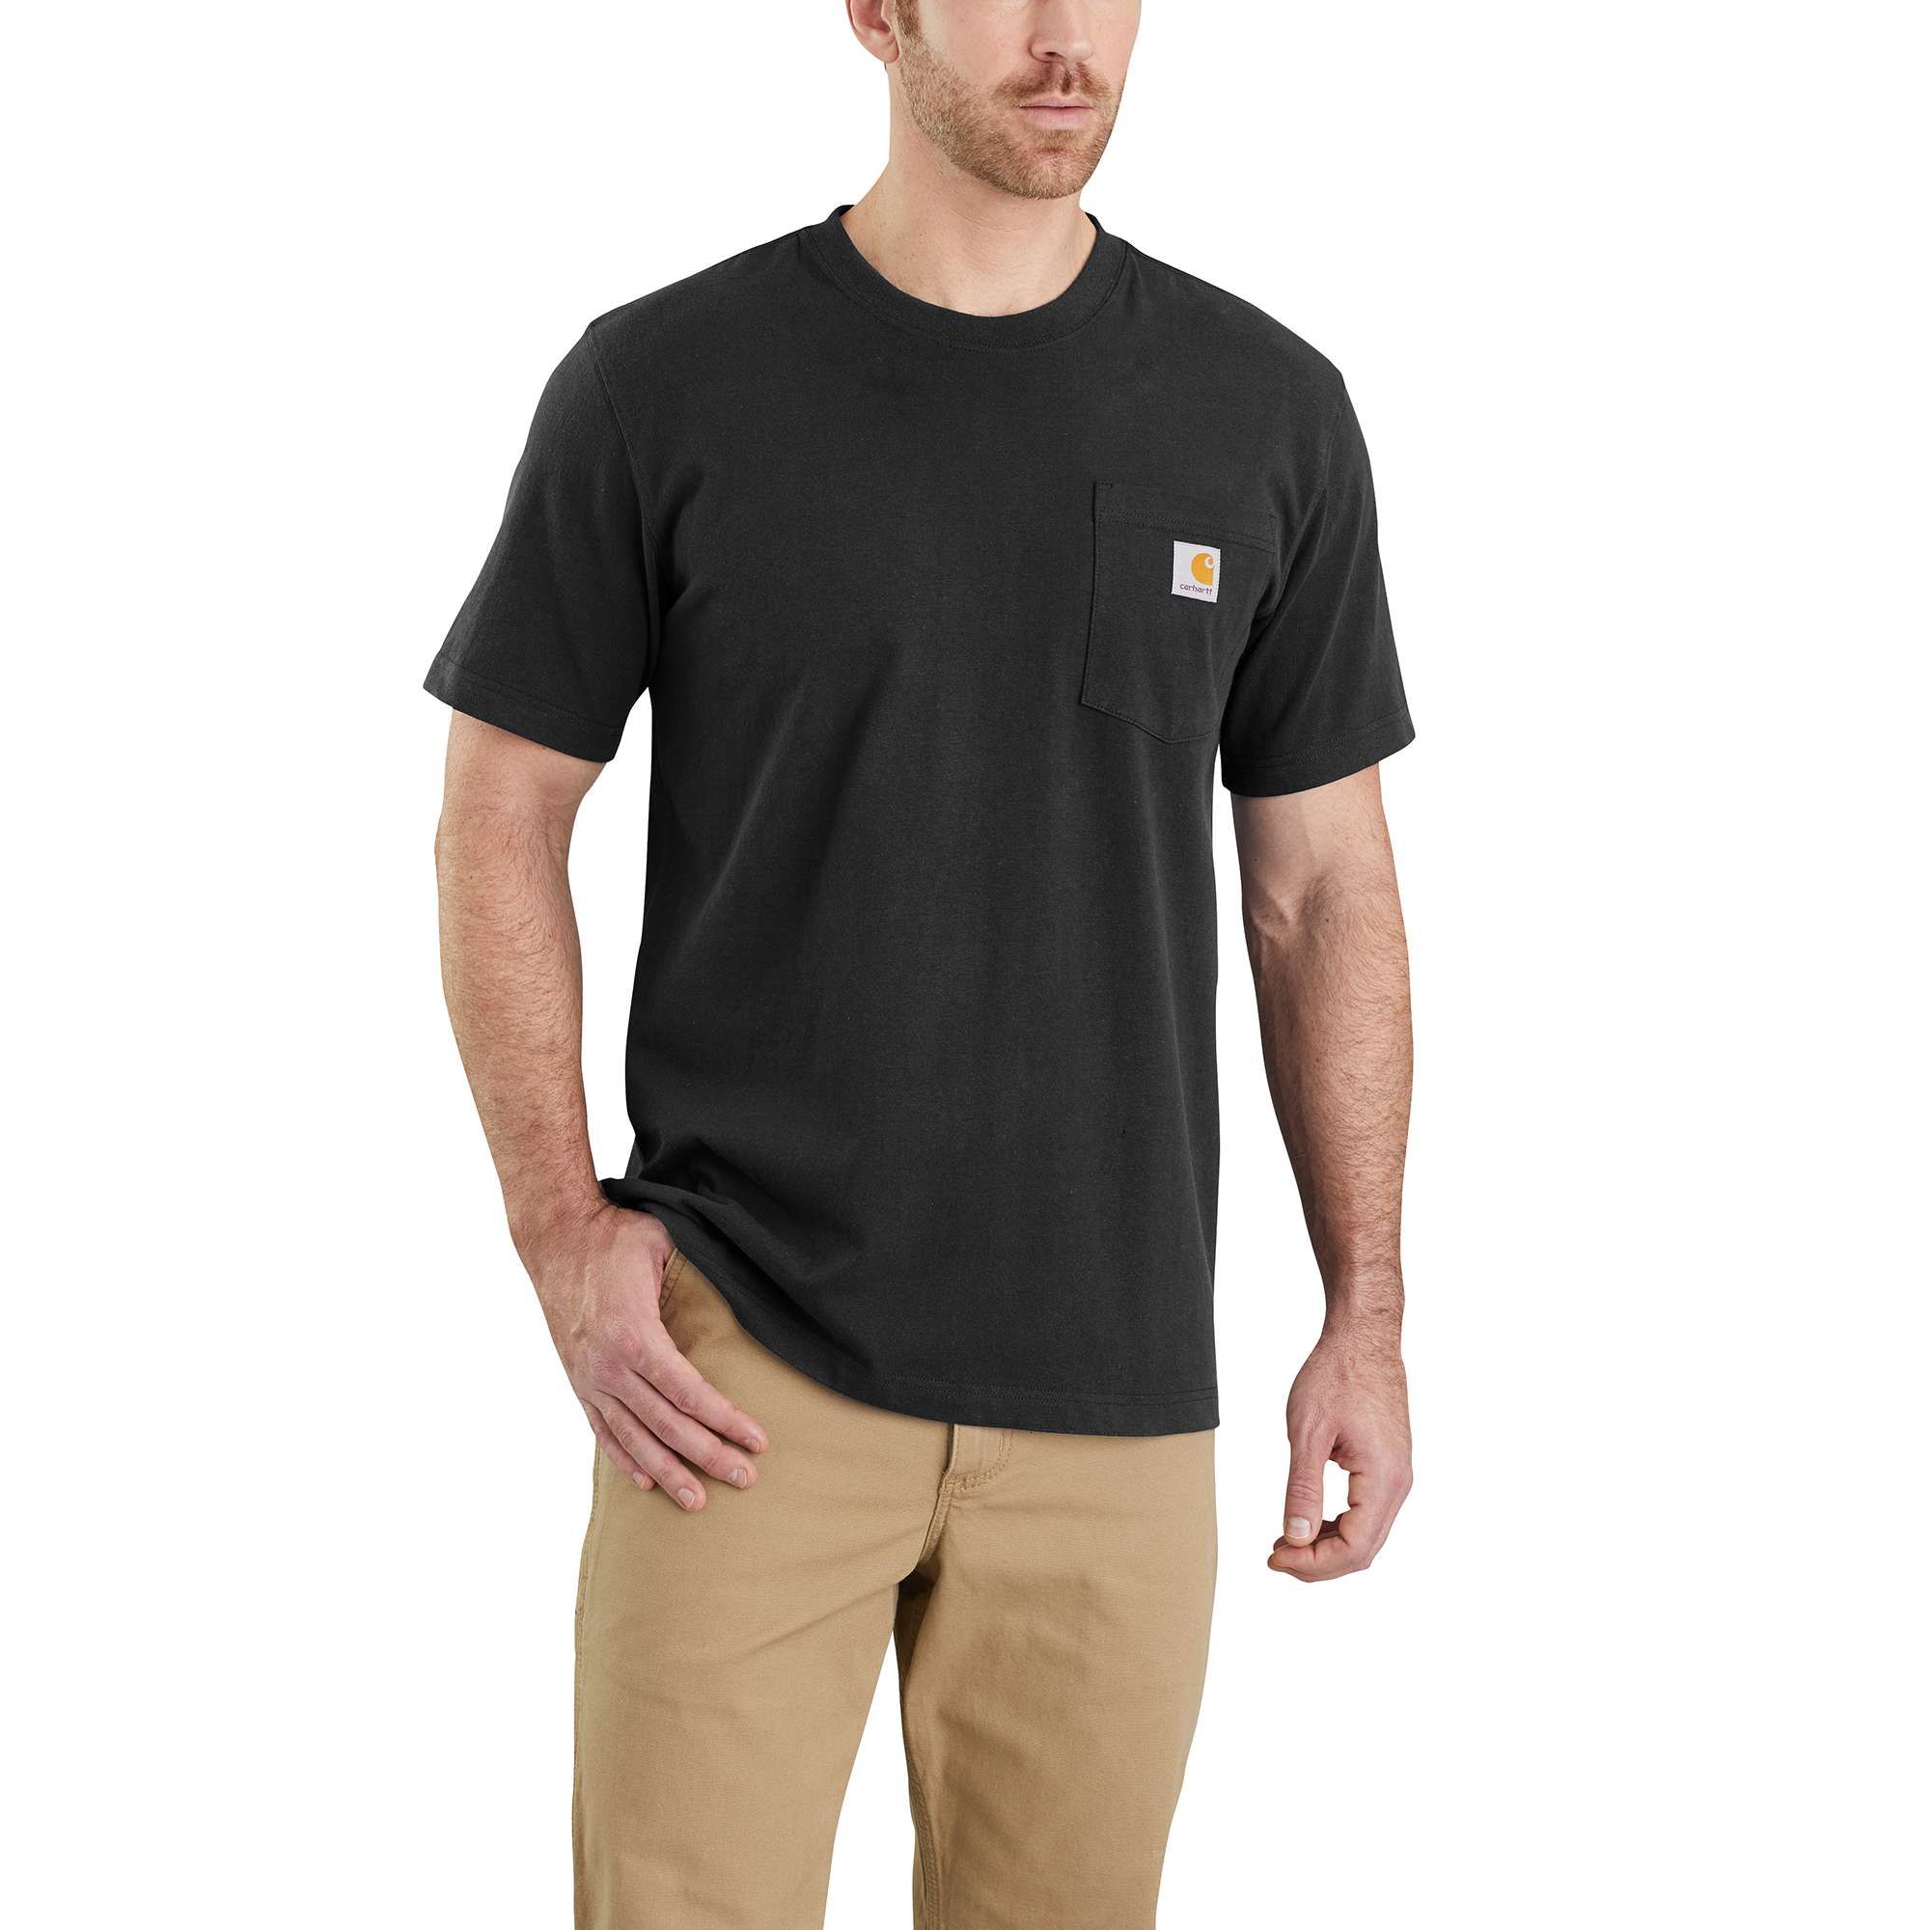 Carhartt Workwear Pocket T-Shirt - Relaxed Fit